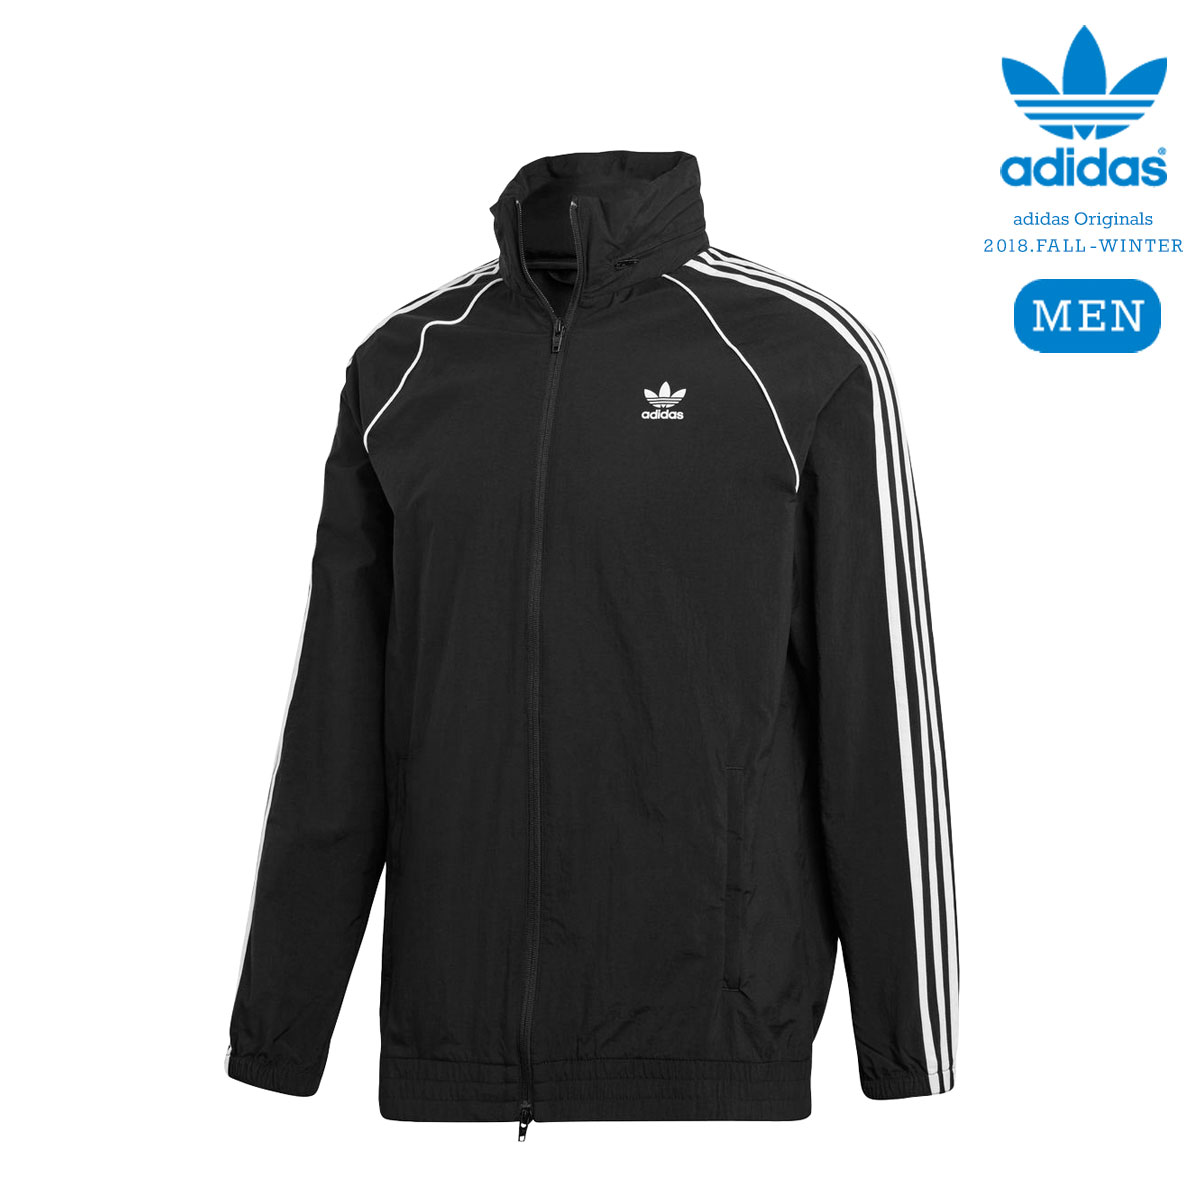 adidas Originals SST WINDBREAKER (Black) 【メンズサイズ】【18FW-I】